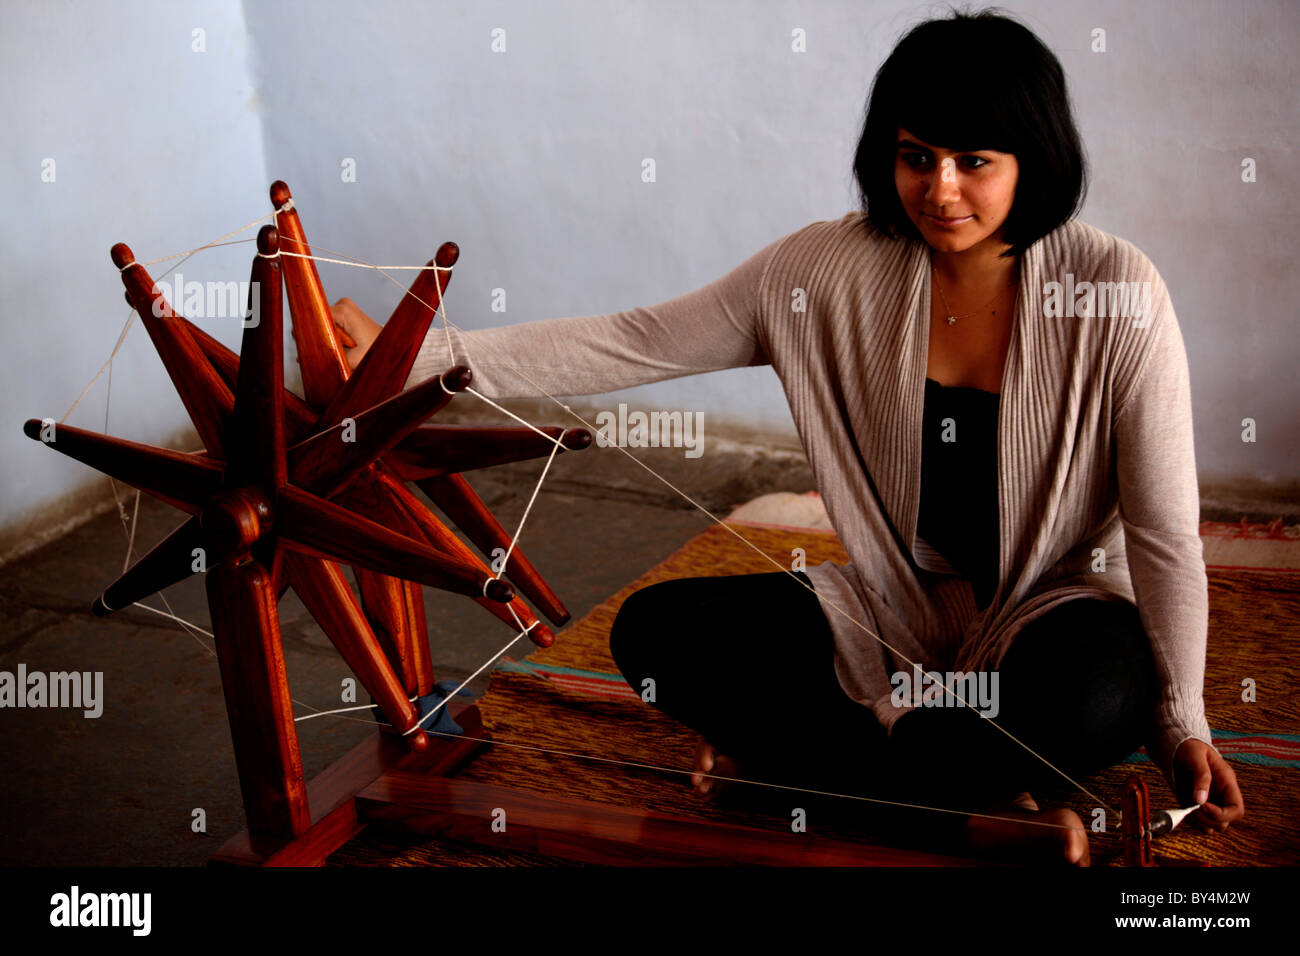 A girl using spinning wheel to make thread Stock Photo